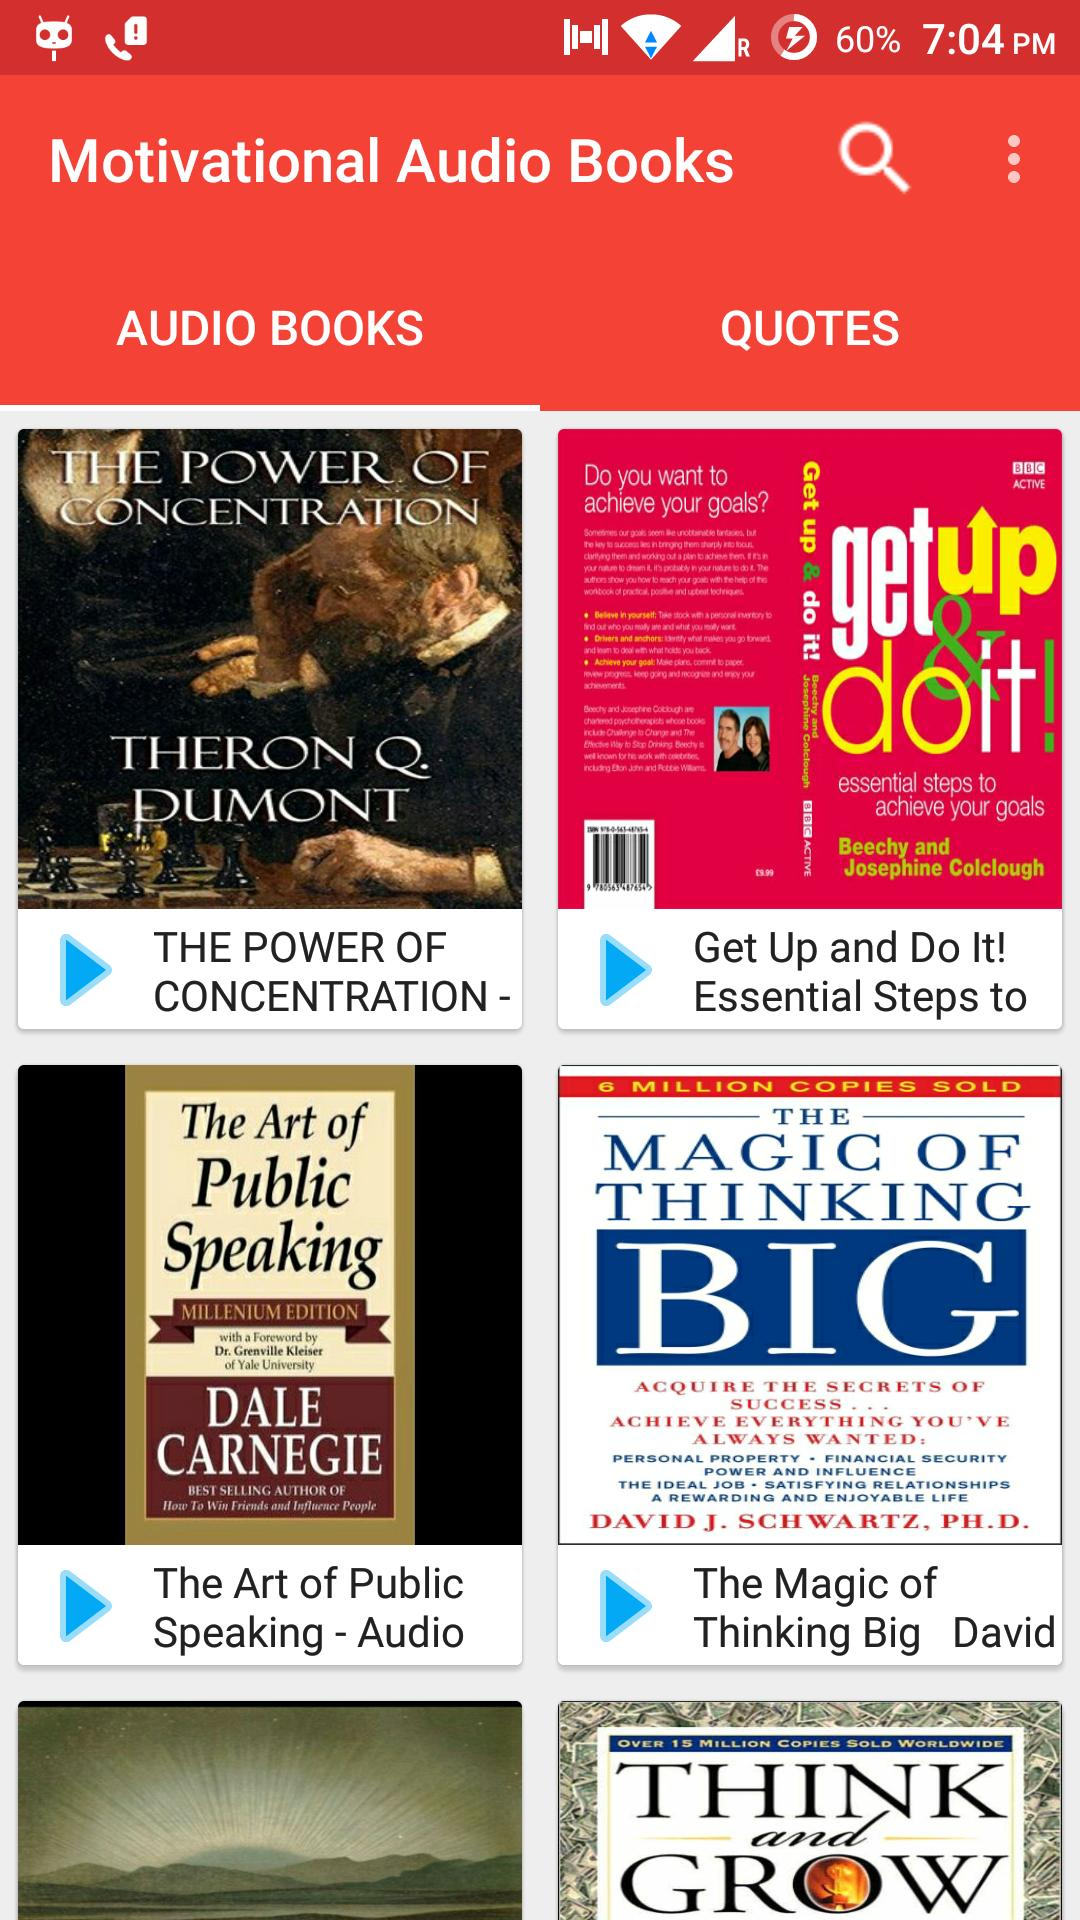 Free Motivational Audio Books & Quotes for Android - APK